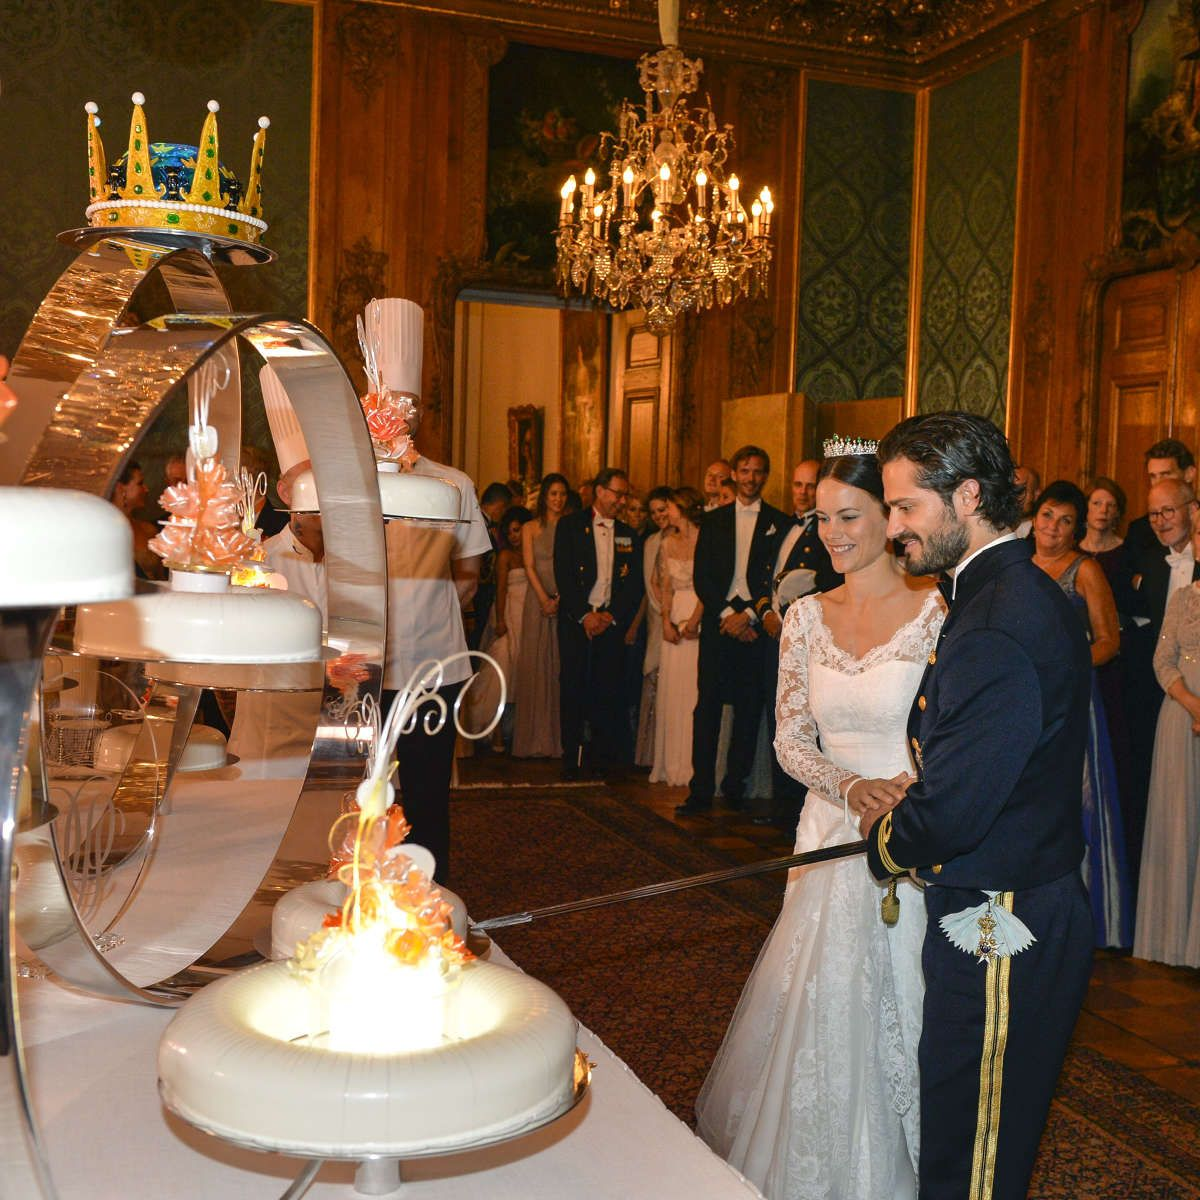 Prince Carl Philip And Sofia Hellqvist S Royal Wedding Royal Wedding Cake Prince Carl Philip Wedding Dinner